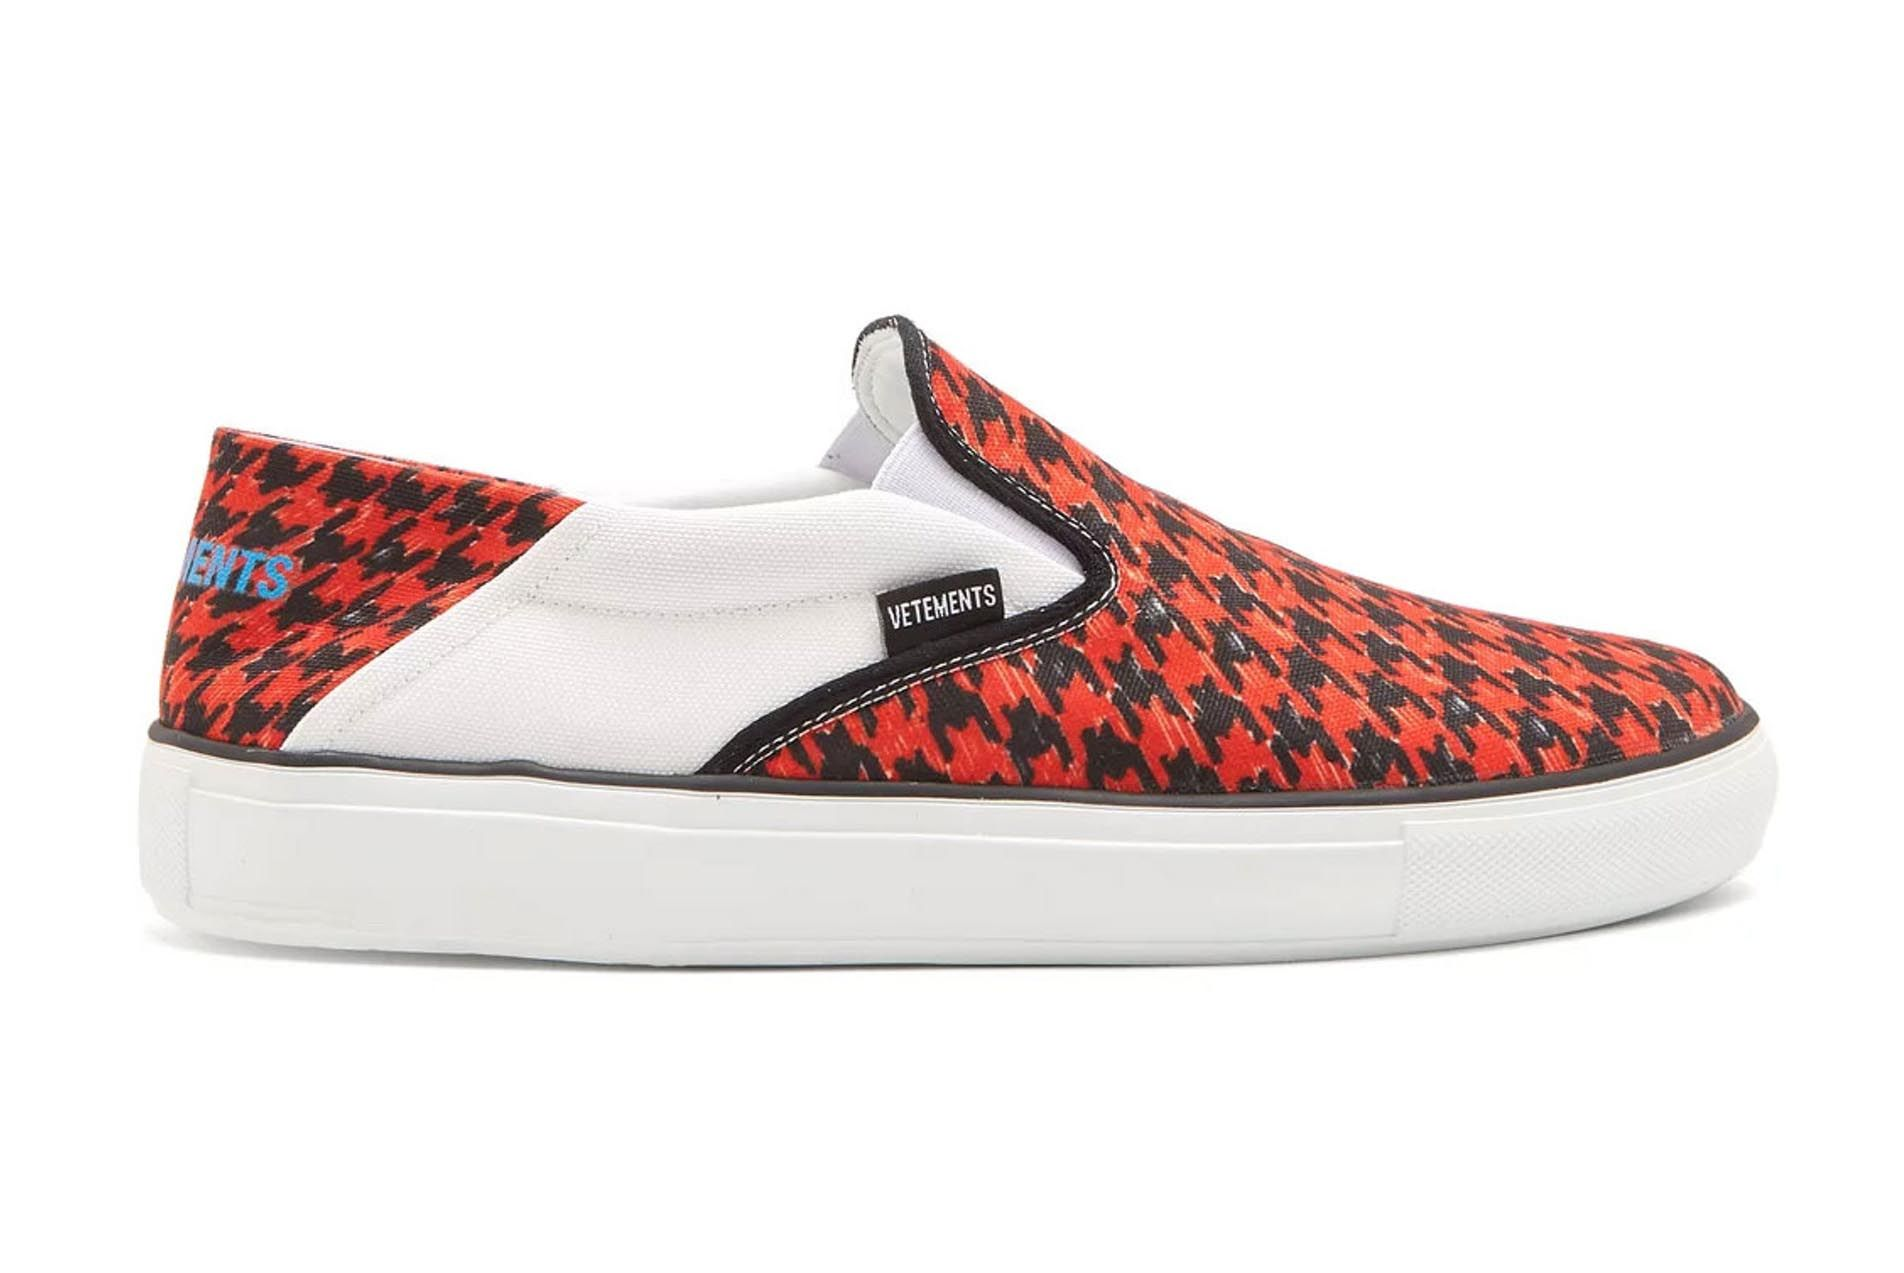 Vetements Houndstooth Slip On Release 2 01 Sneaker Freaker